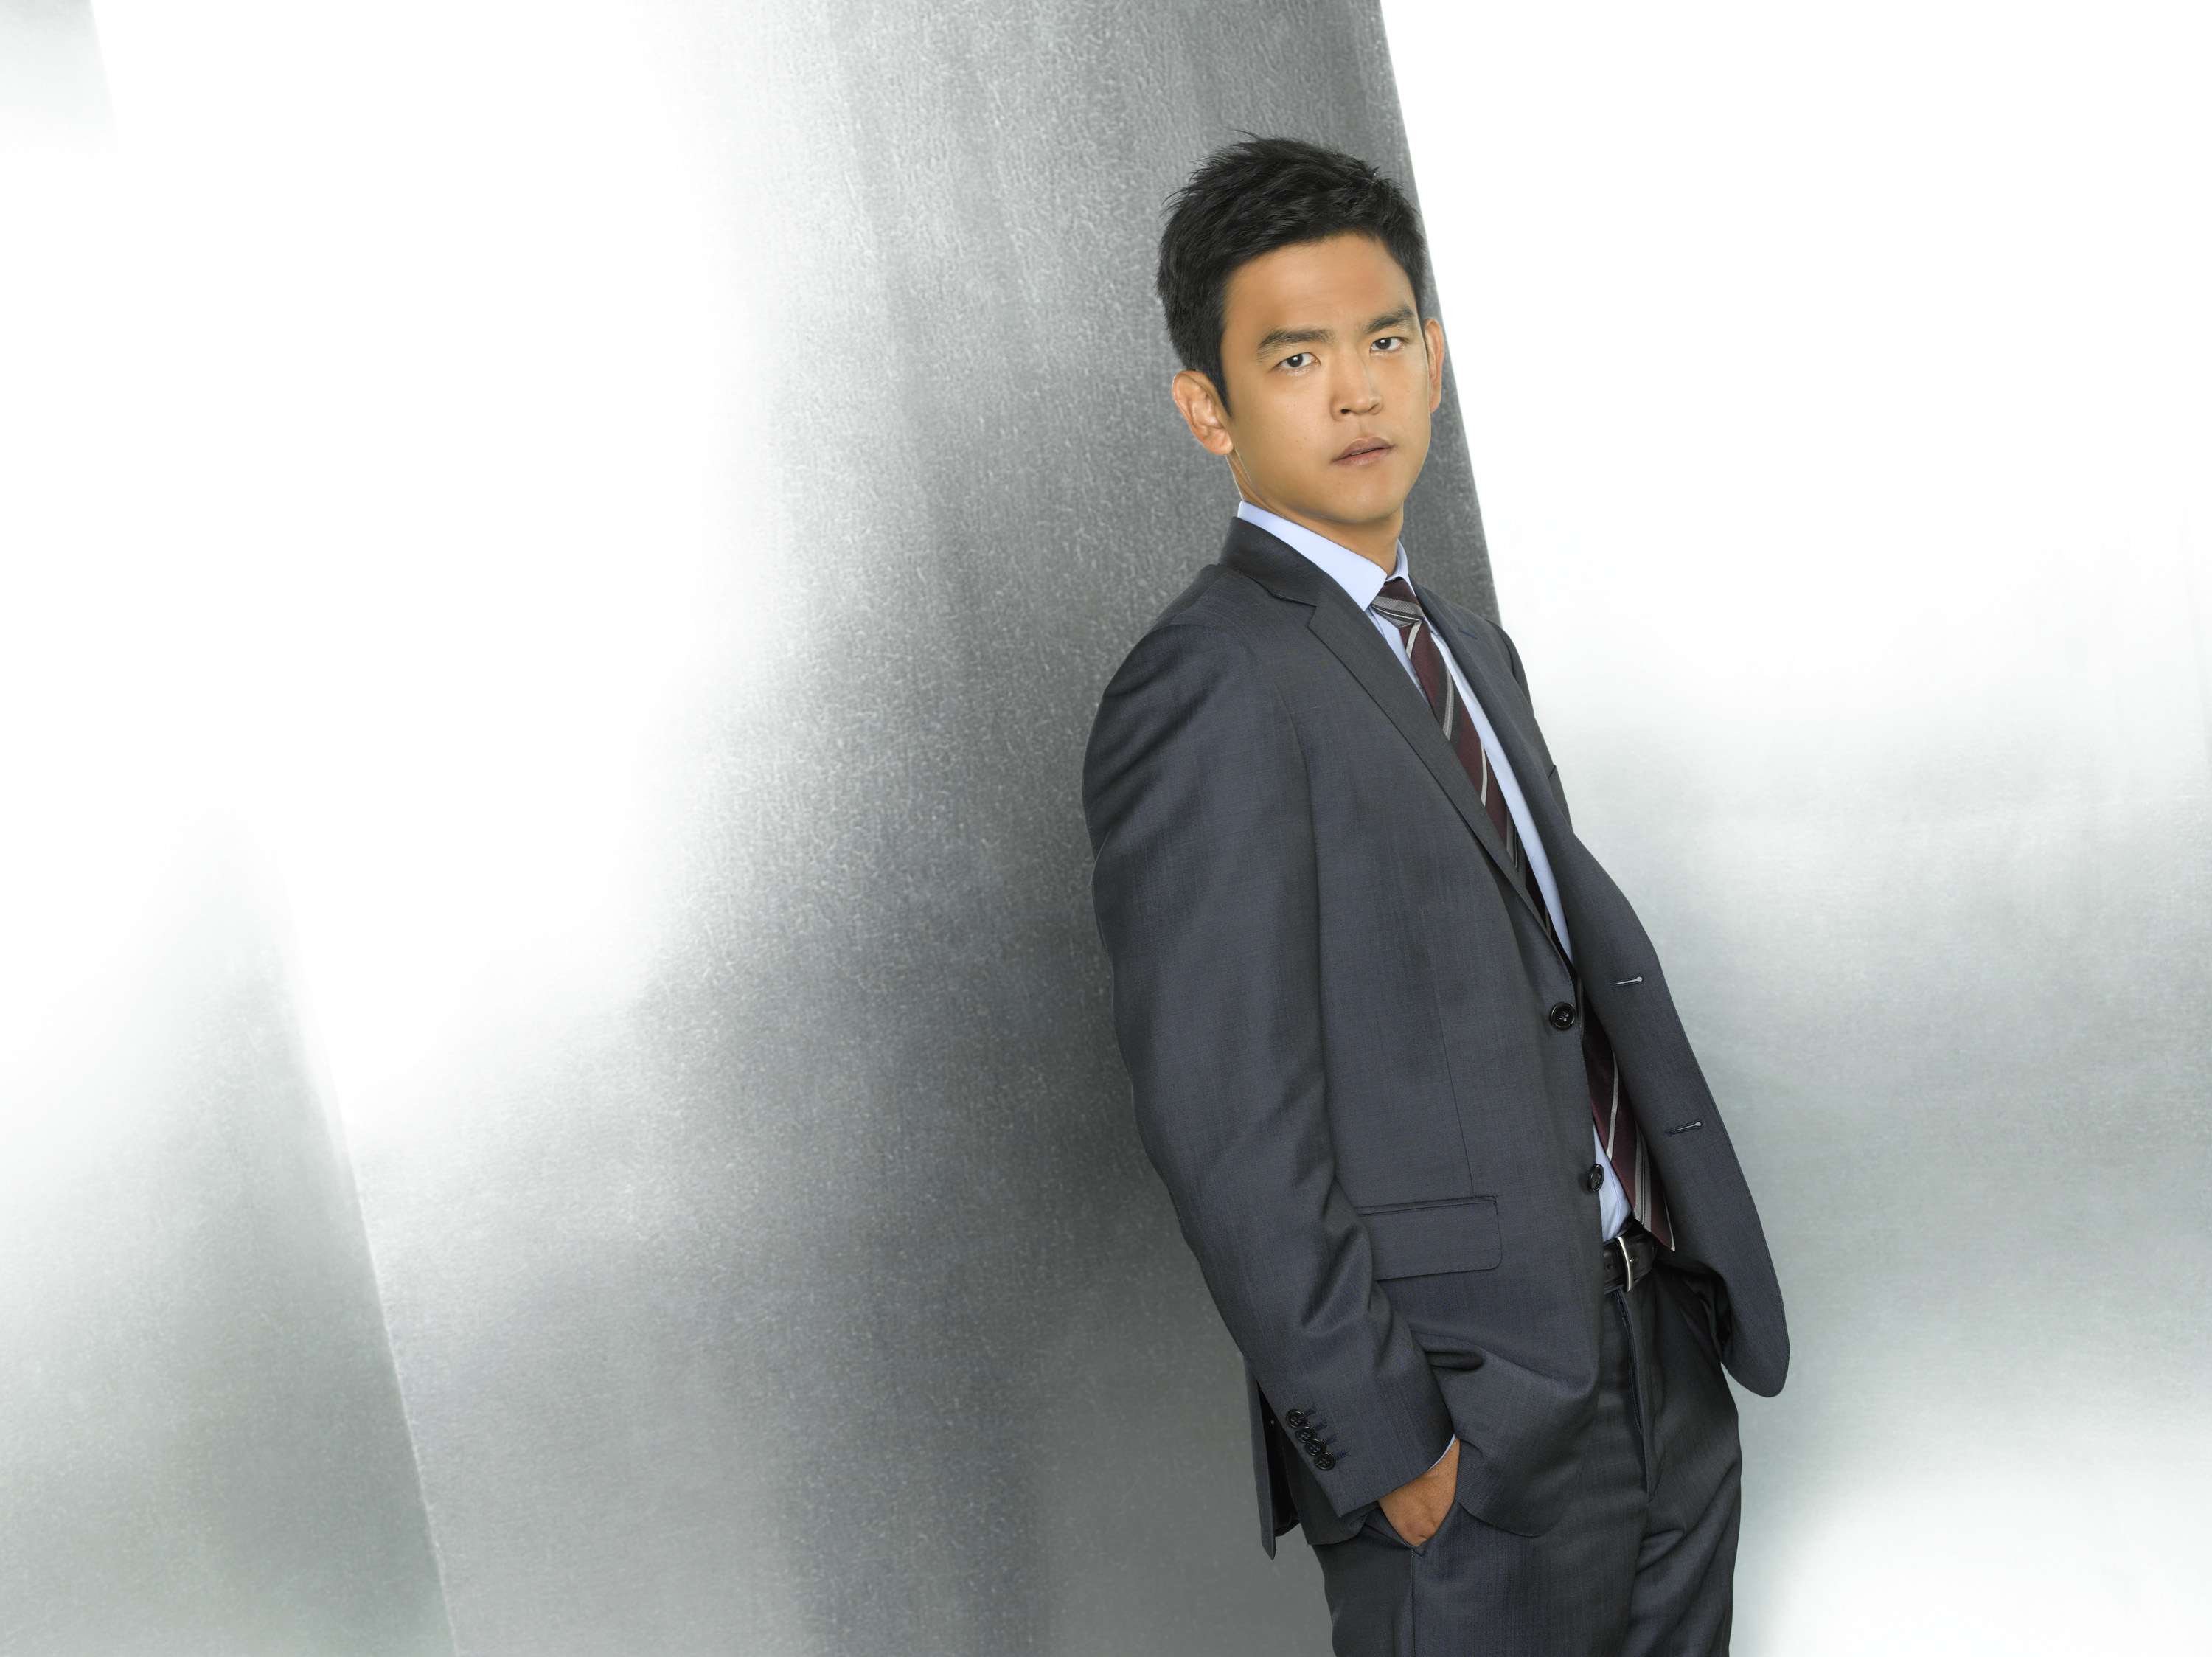 john cho 4k widescreen desktop wallpaper 1416